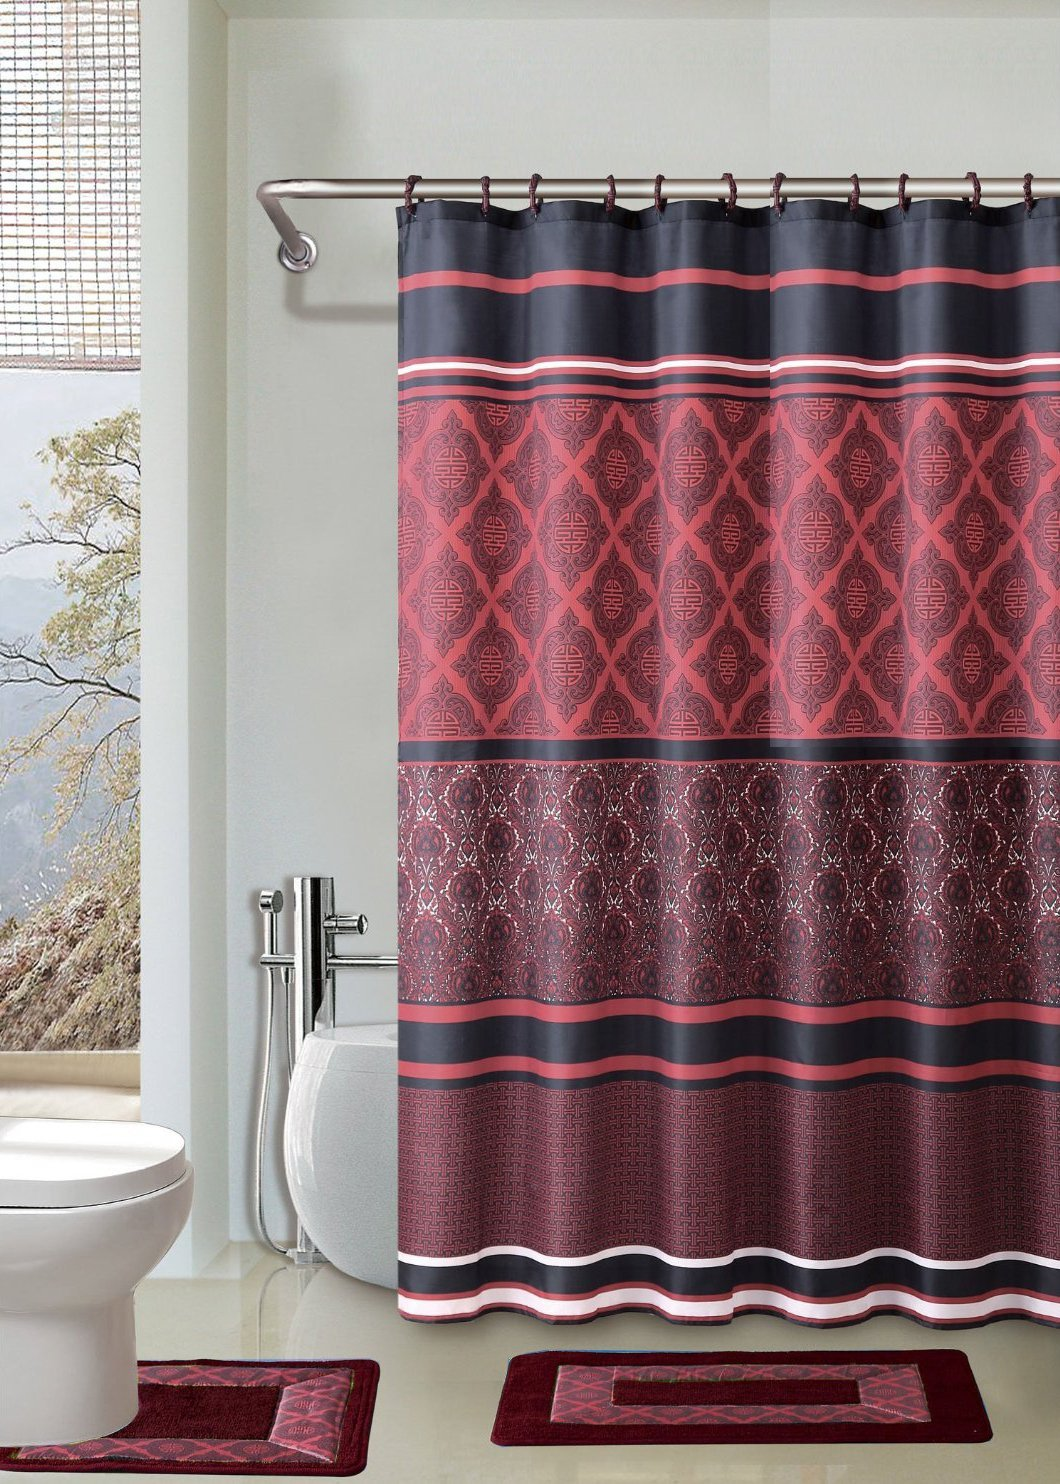 Kohls Fabric Shower Curtains Bath Supplies Store